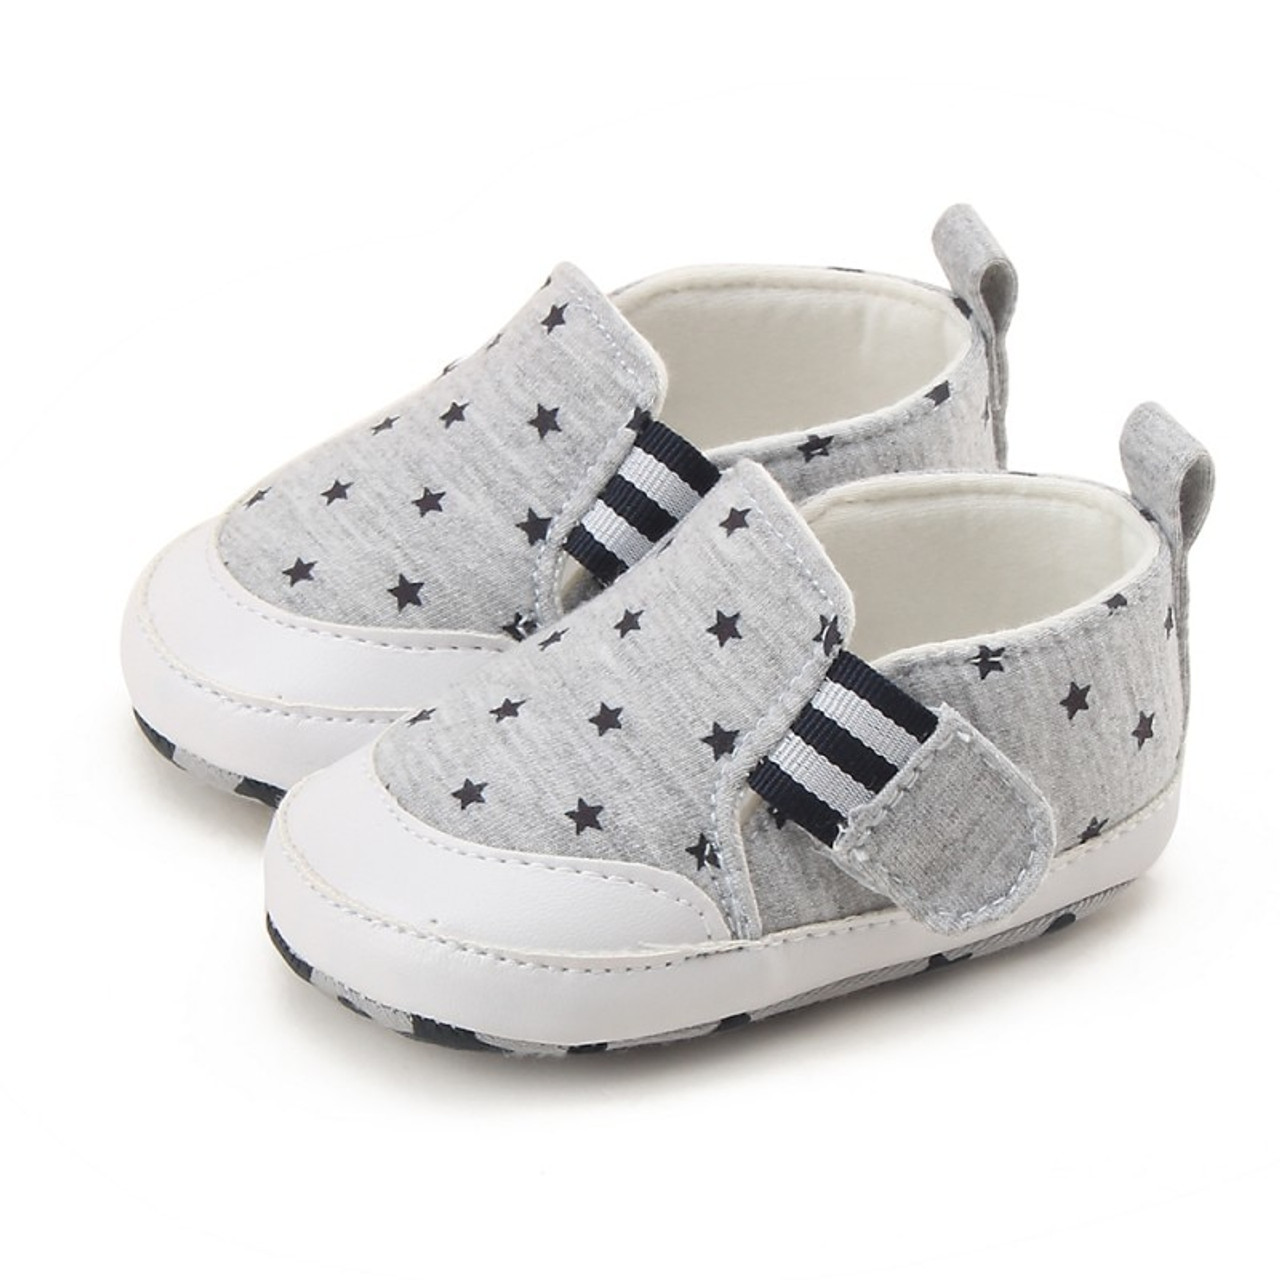 dce852126 2017 Hot Sale Kids Baby Soft Bottom Walking Shoes Striped Anti-Slip Cotton  Fabric Toddler Infant Sneakers - OnshopDeals.Com